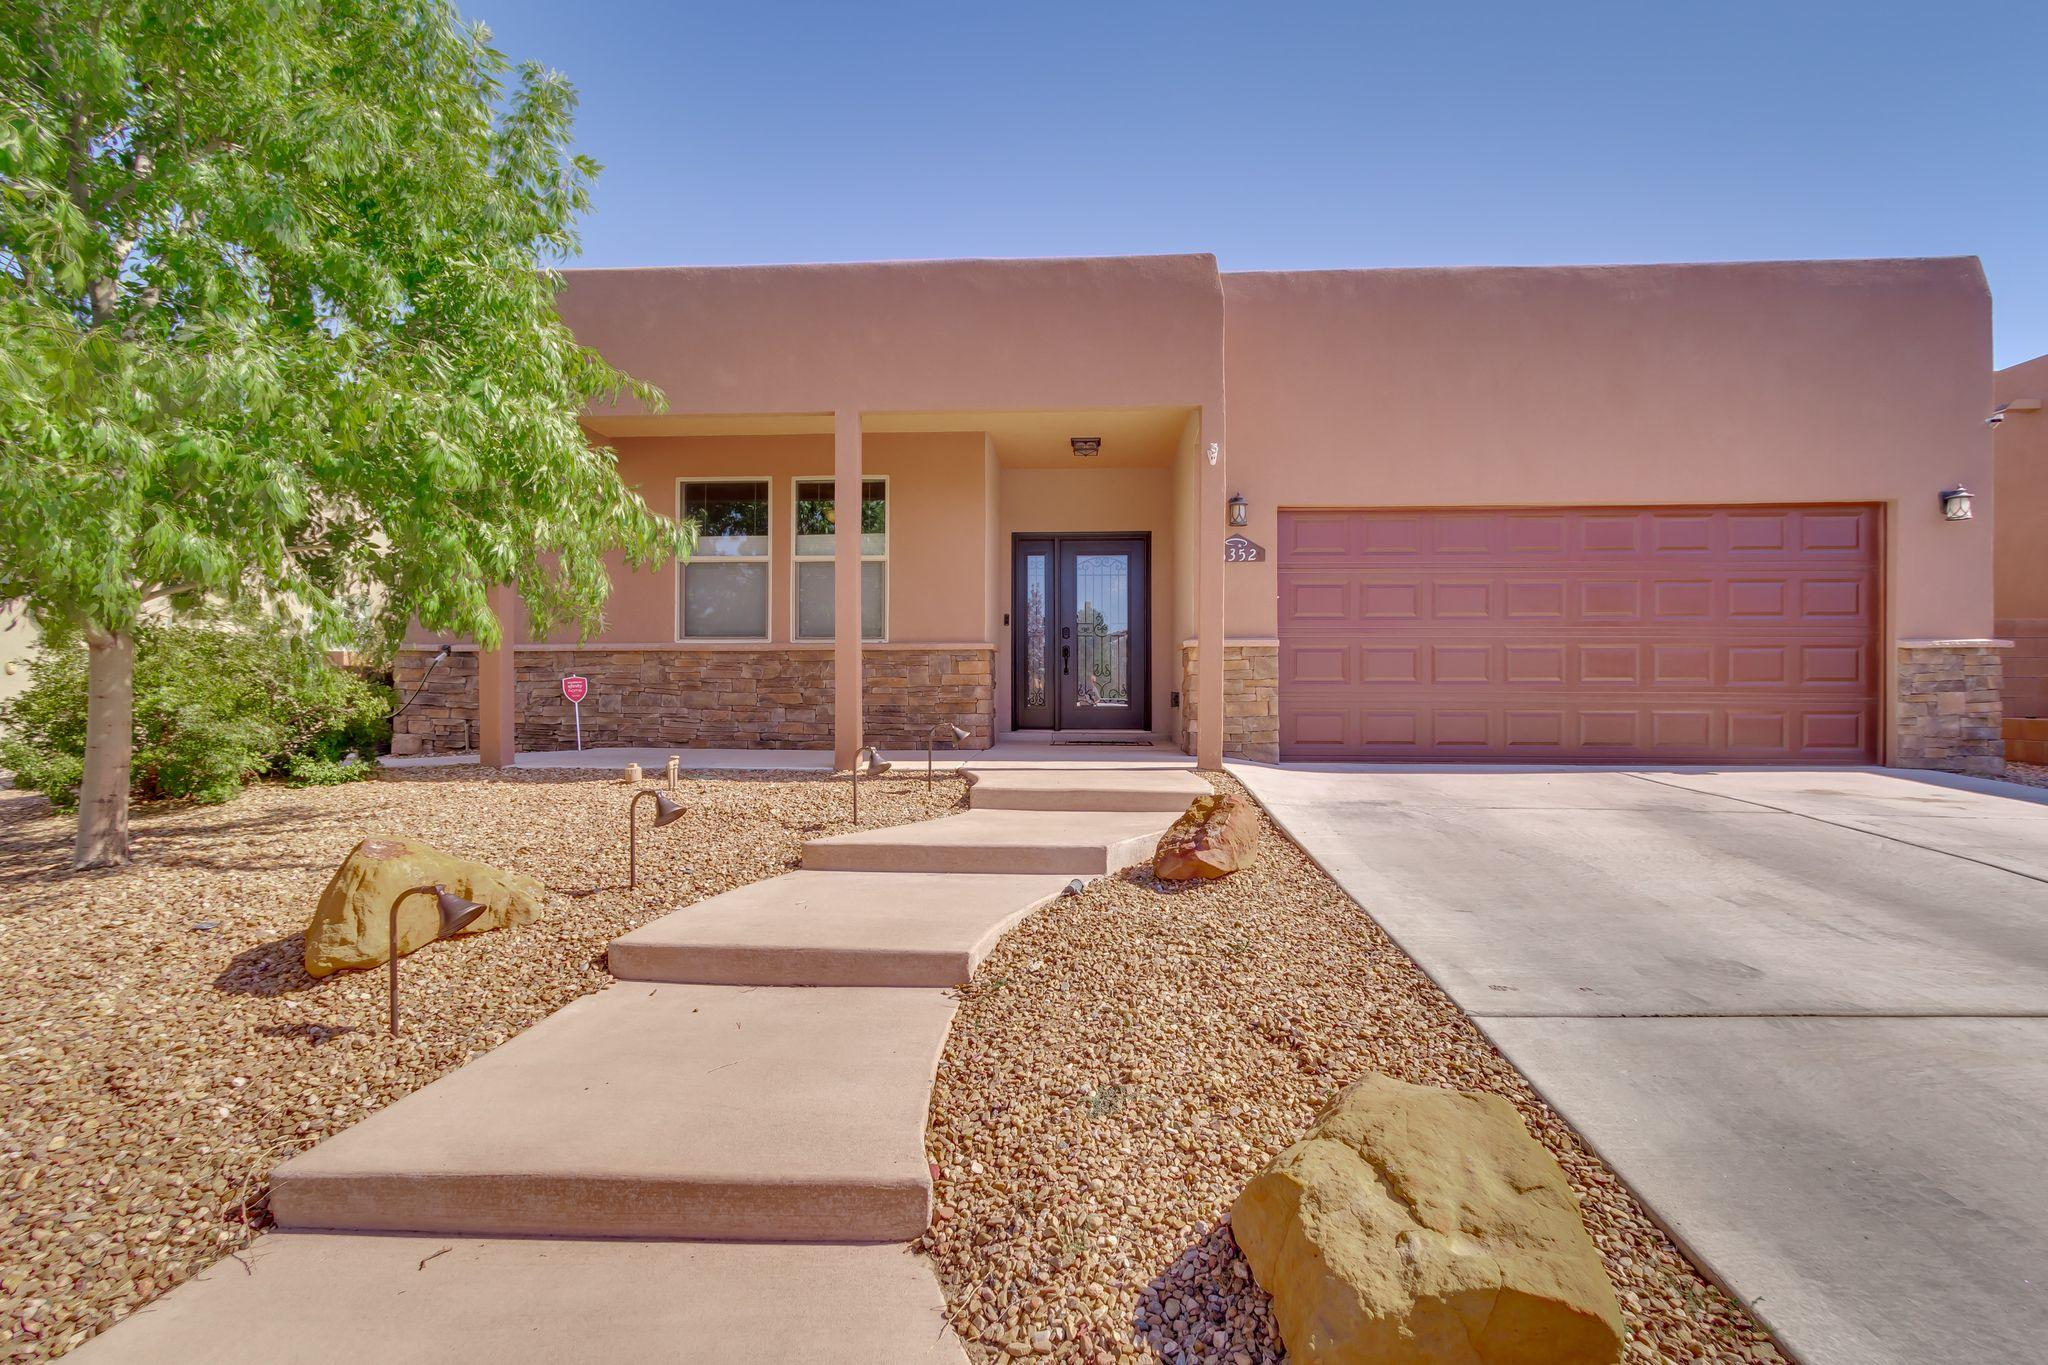 Beautiful MOUNTAIN AND CITY VIEWS!!! Wonderful one-owner Twilight home with open floor plan and refrigerated air.  Enjoy entertaining in the large great room  by the gas log fireplace.  Over sized windows with shutters to enjoy the breathtaking views. Updated back door slider and front door with custom paint through out. Kitchen features SS appliances, granite counters, pantry, island, breakfast bar and large breakfast nook. For extra space, this home includes a separate large dining room. Owner's suite features, en-suite bath w/garden tub and separate shower. Spend your free time outdoors on the covered & uncovered patios and low maintenance fully landscaped front and back yard.  Shed stays! Gorgeous and move in ready! **Don't miss the Photos and Virtual Tour!**